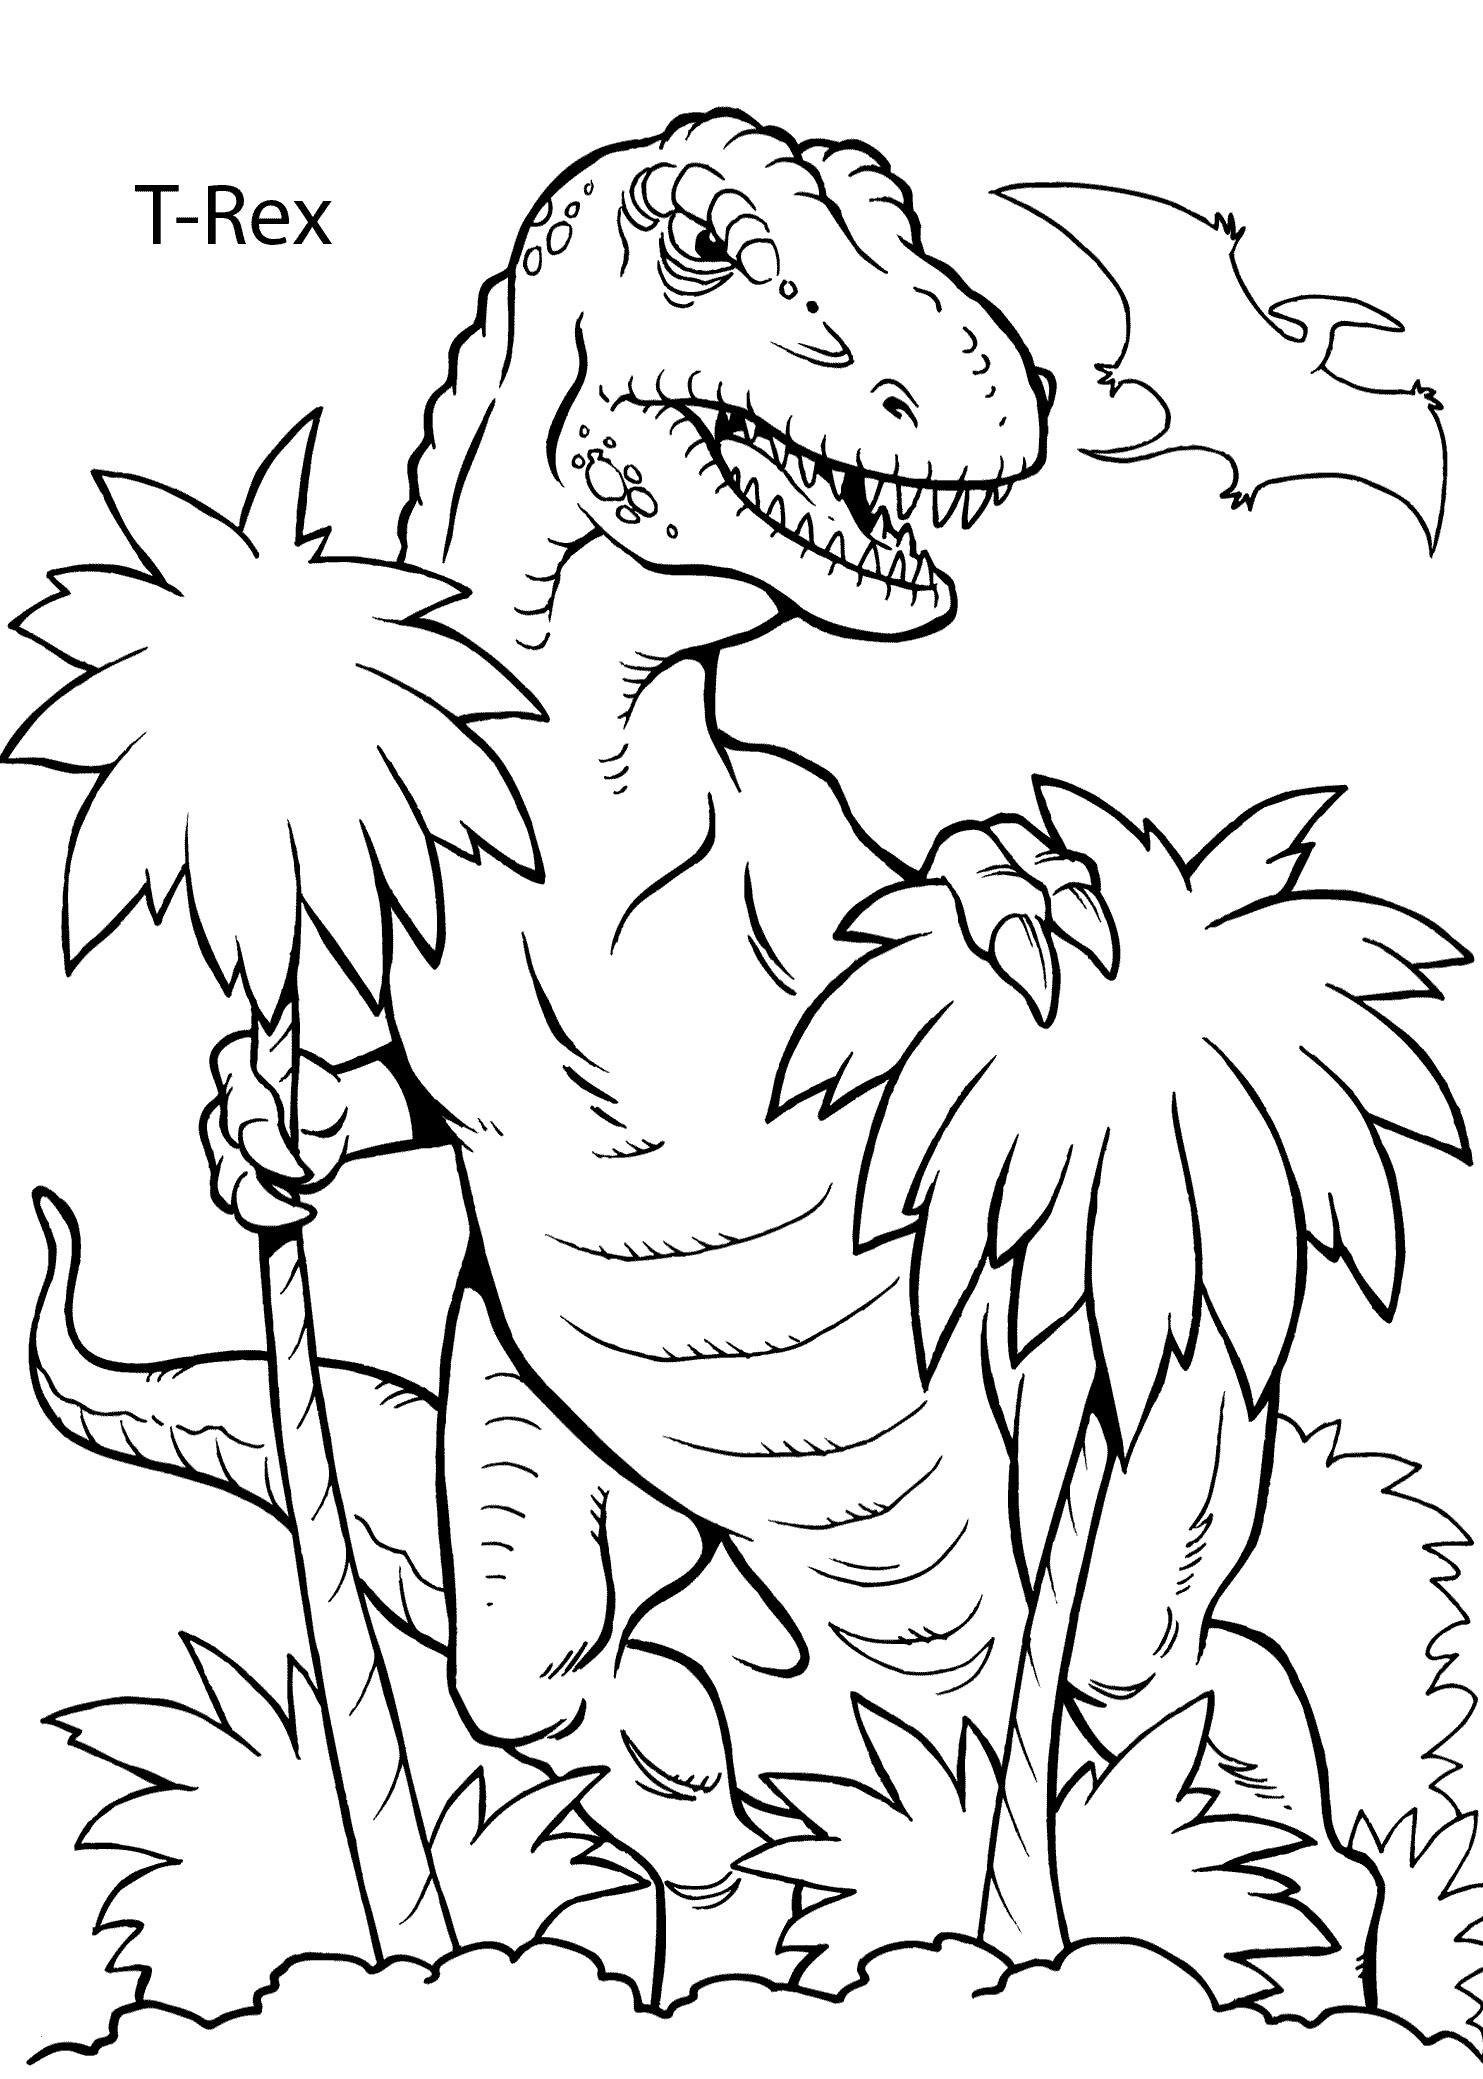 hiking coloring pages Collection-T Rex dinosaur coloring pages for kids printable free 4-f